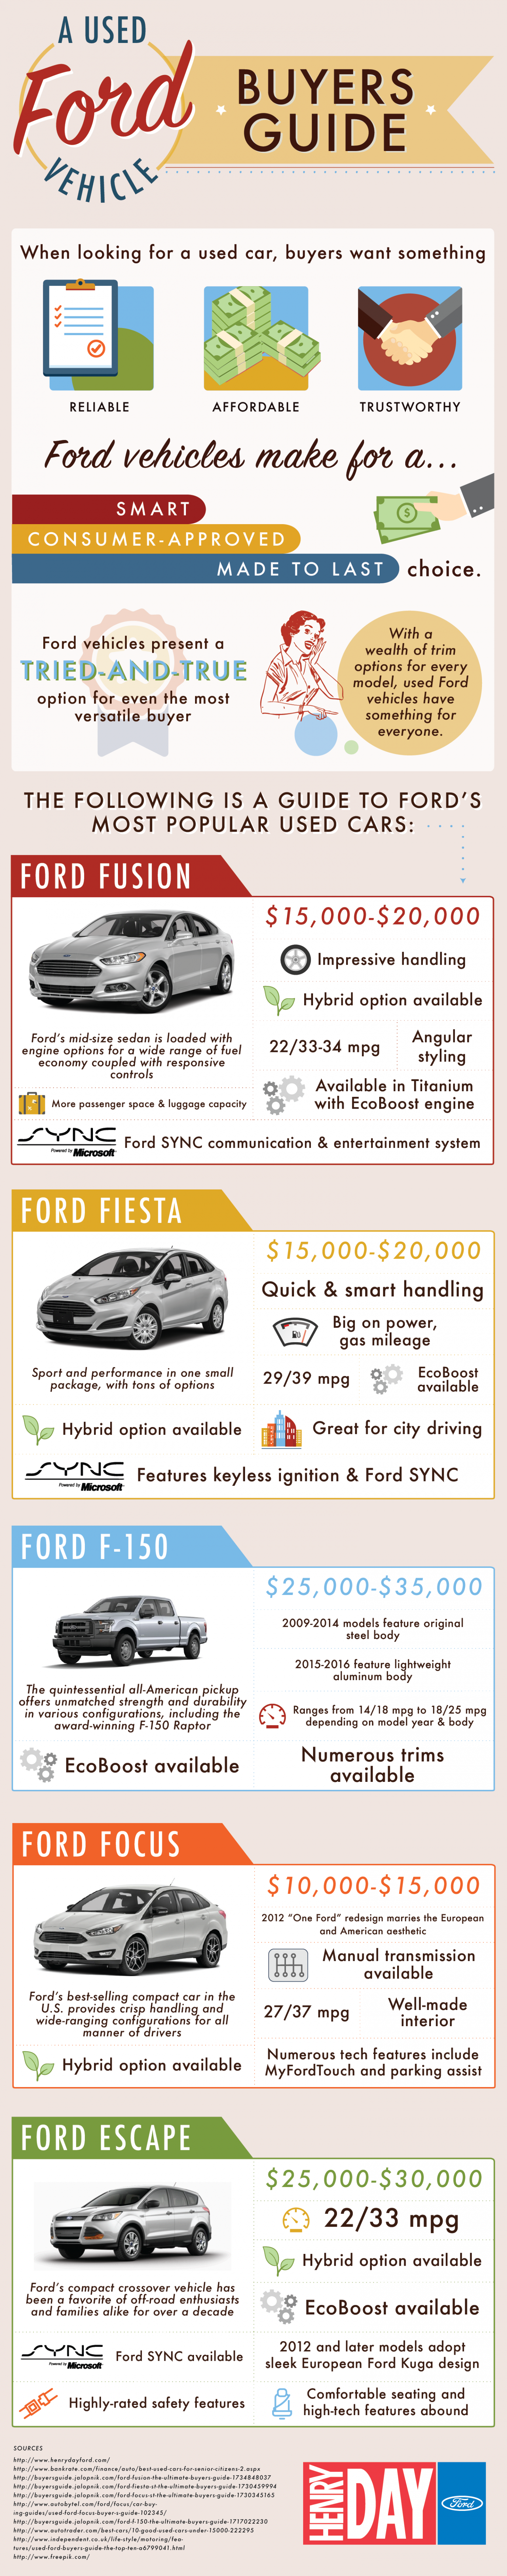 A Used Ford Vehicle Buyer's Guide Infographic